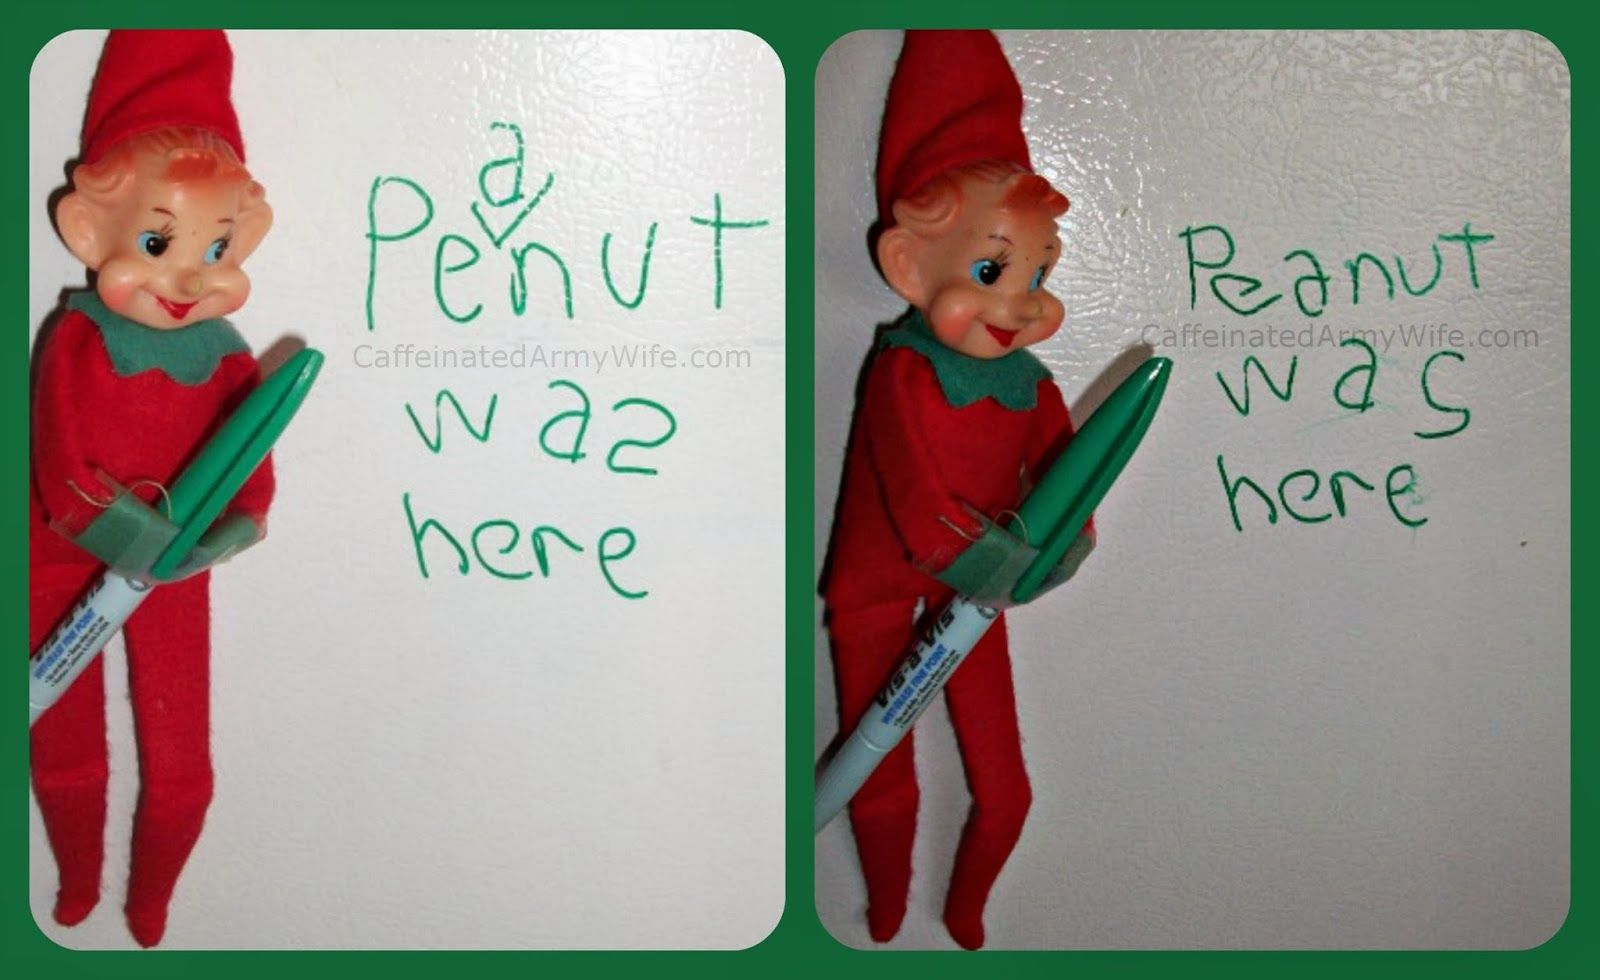 Today we learned that our elf had a name